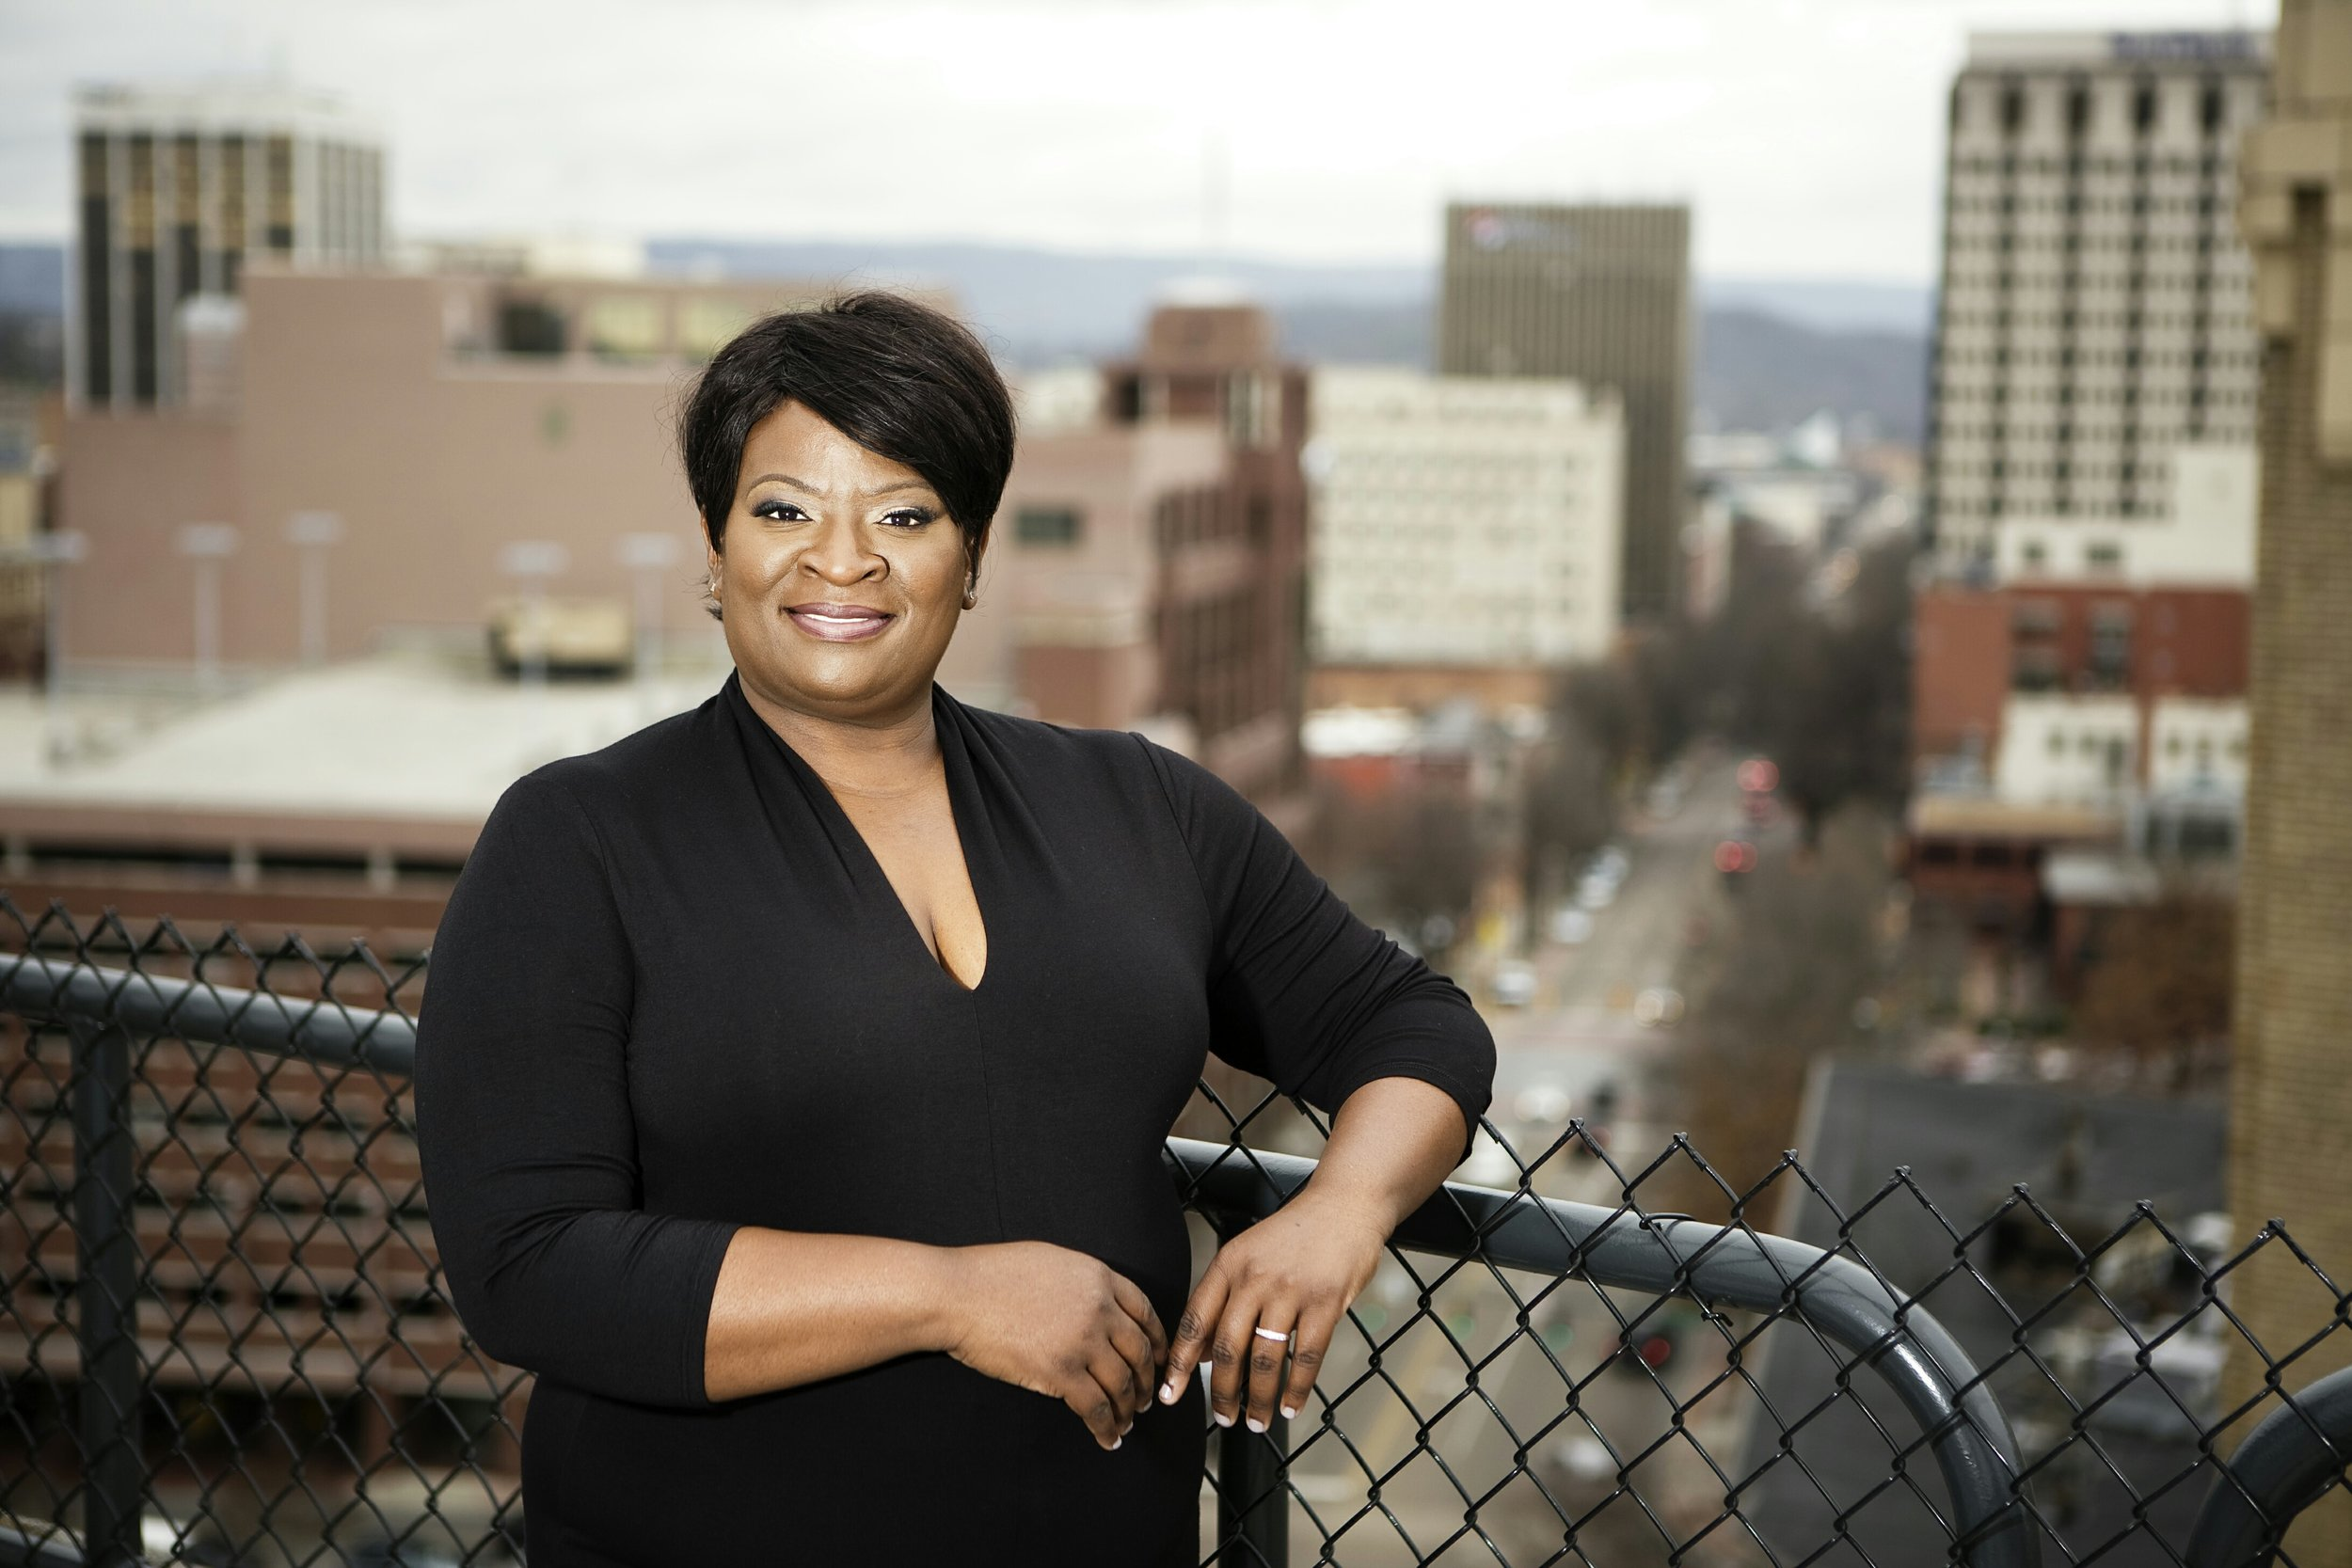 Felicia Jackson, Founder CPR Life Wrap (Photo Cred: Chris Wolfe